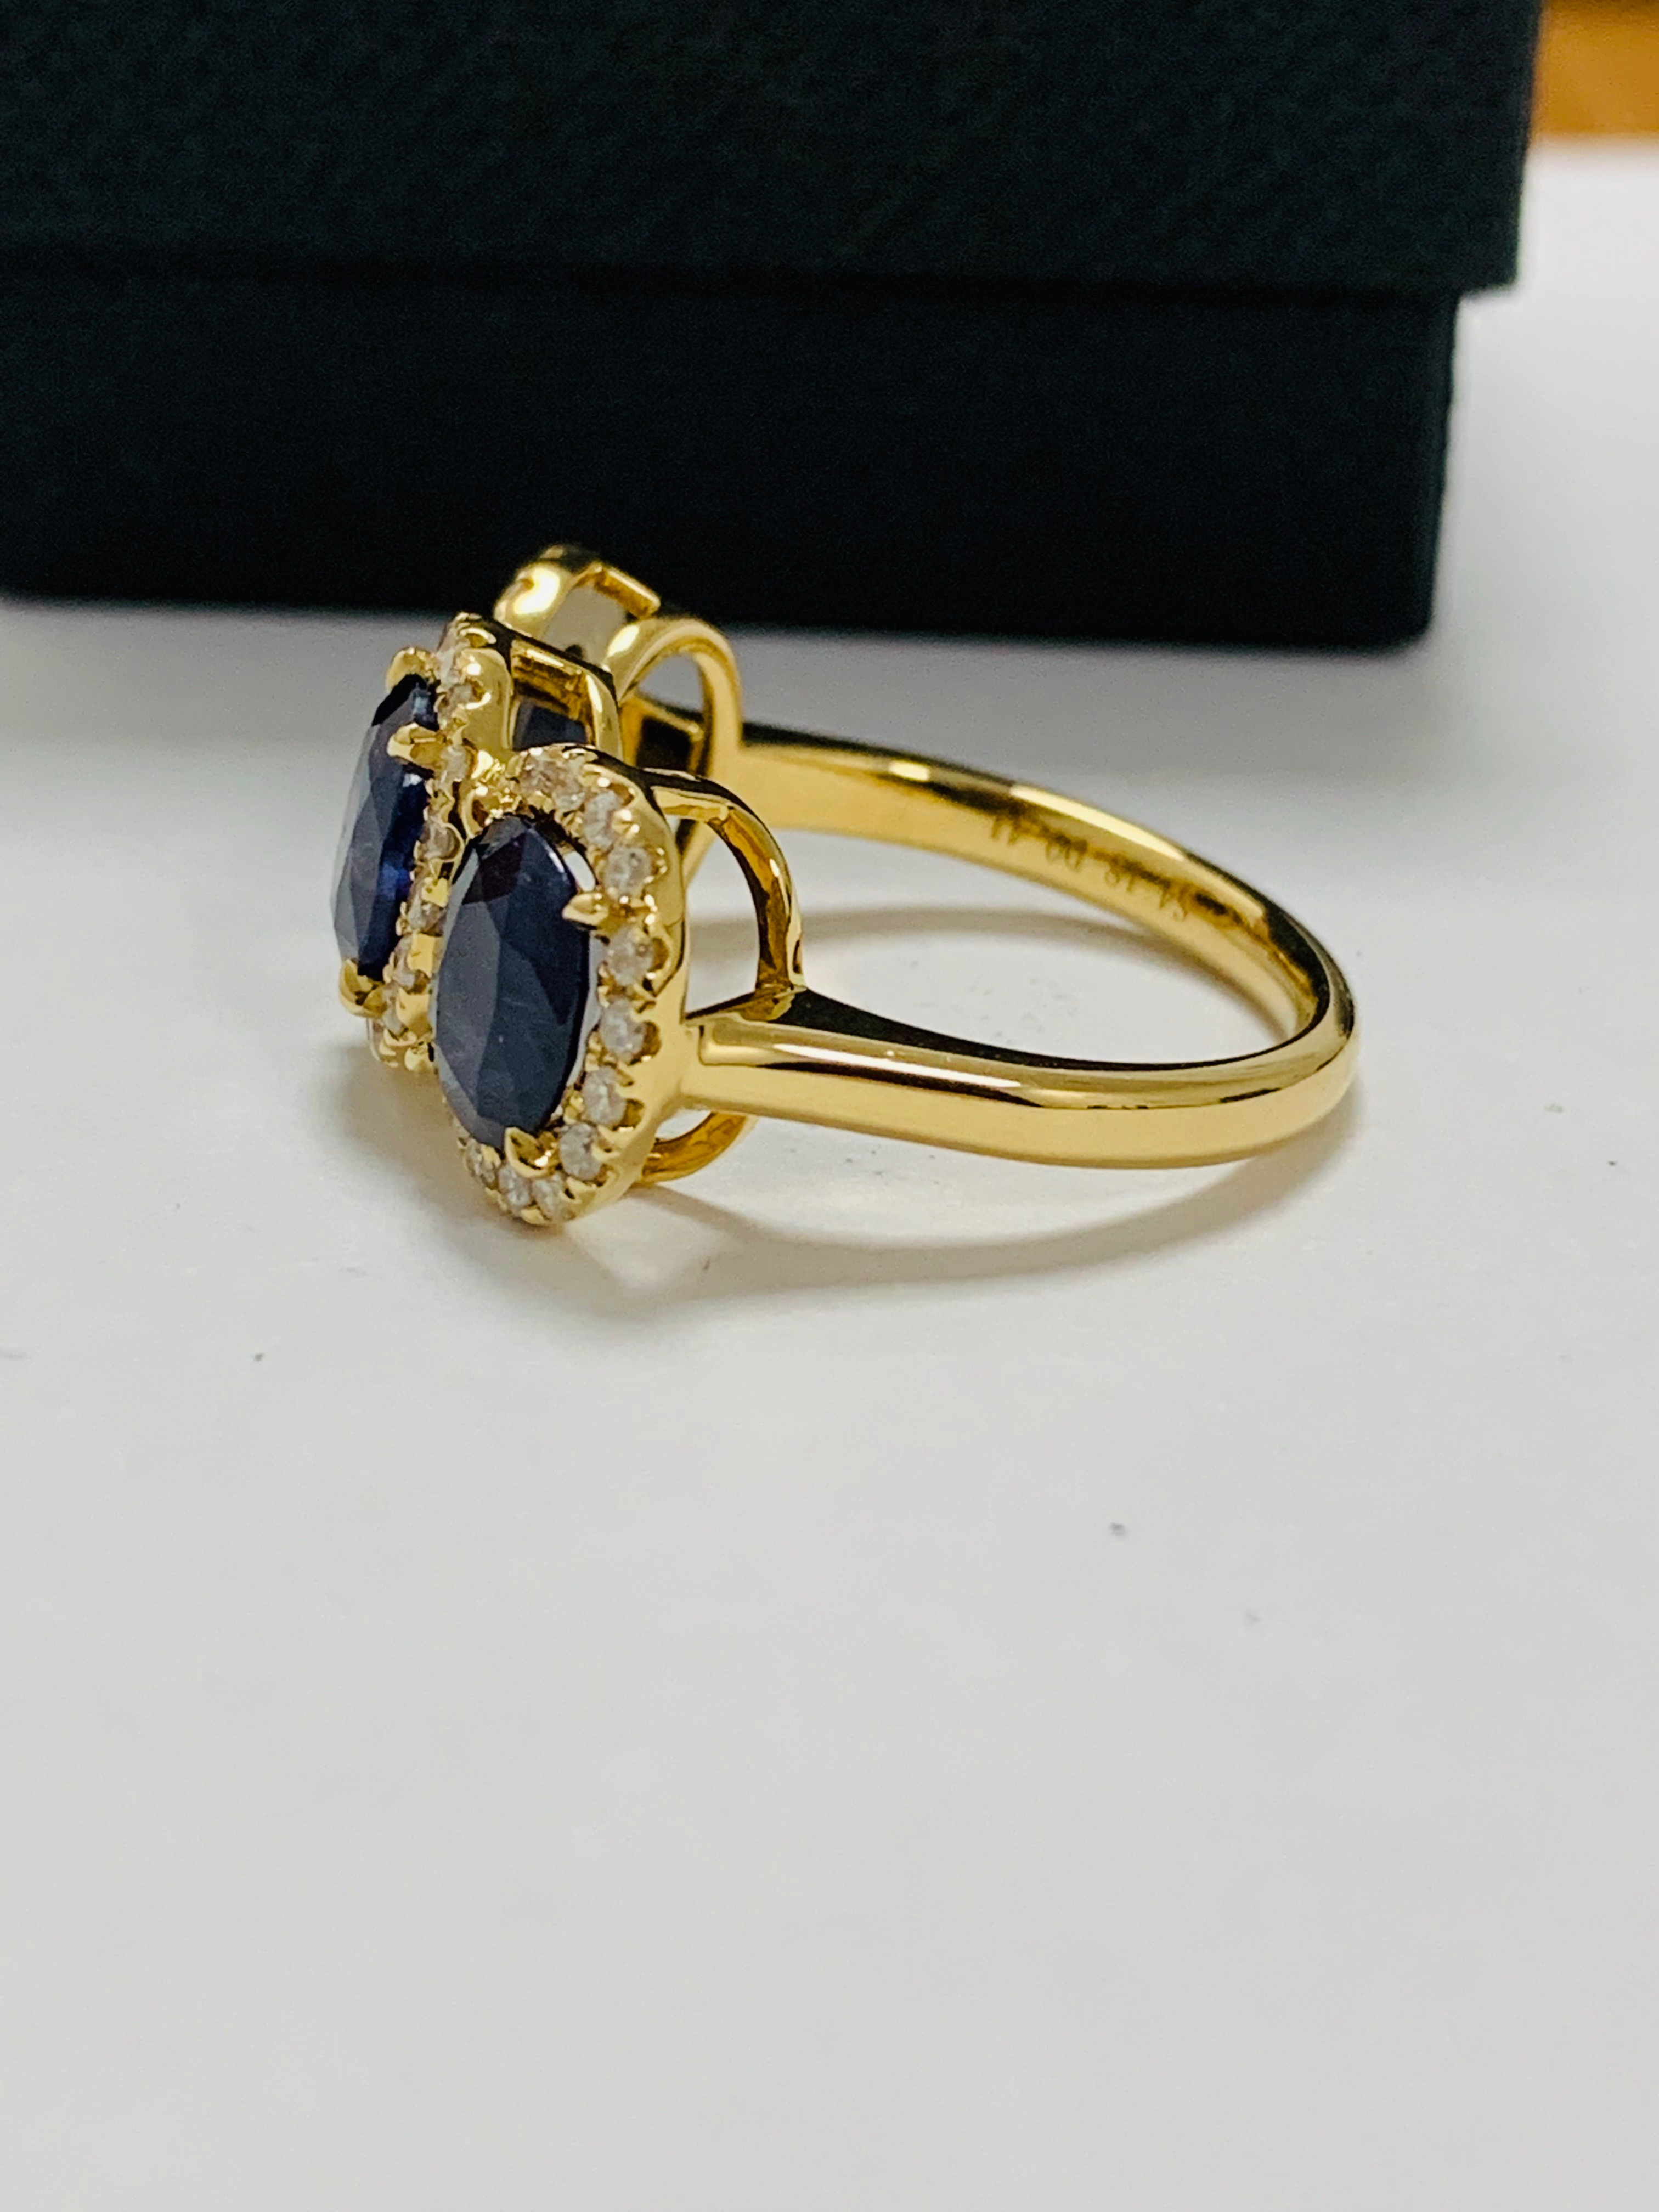 18ct yellow gold sapphire and diamond ring - Image 3 of 12